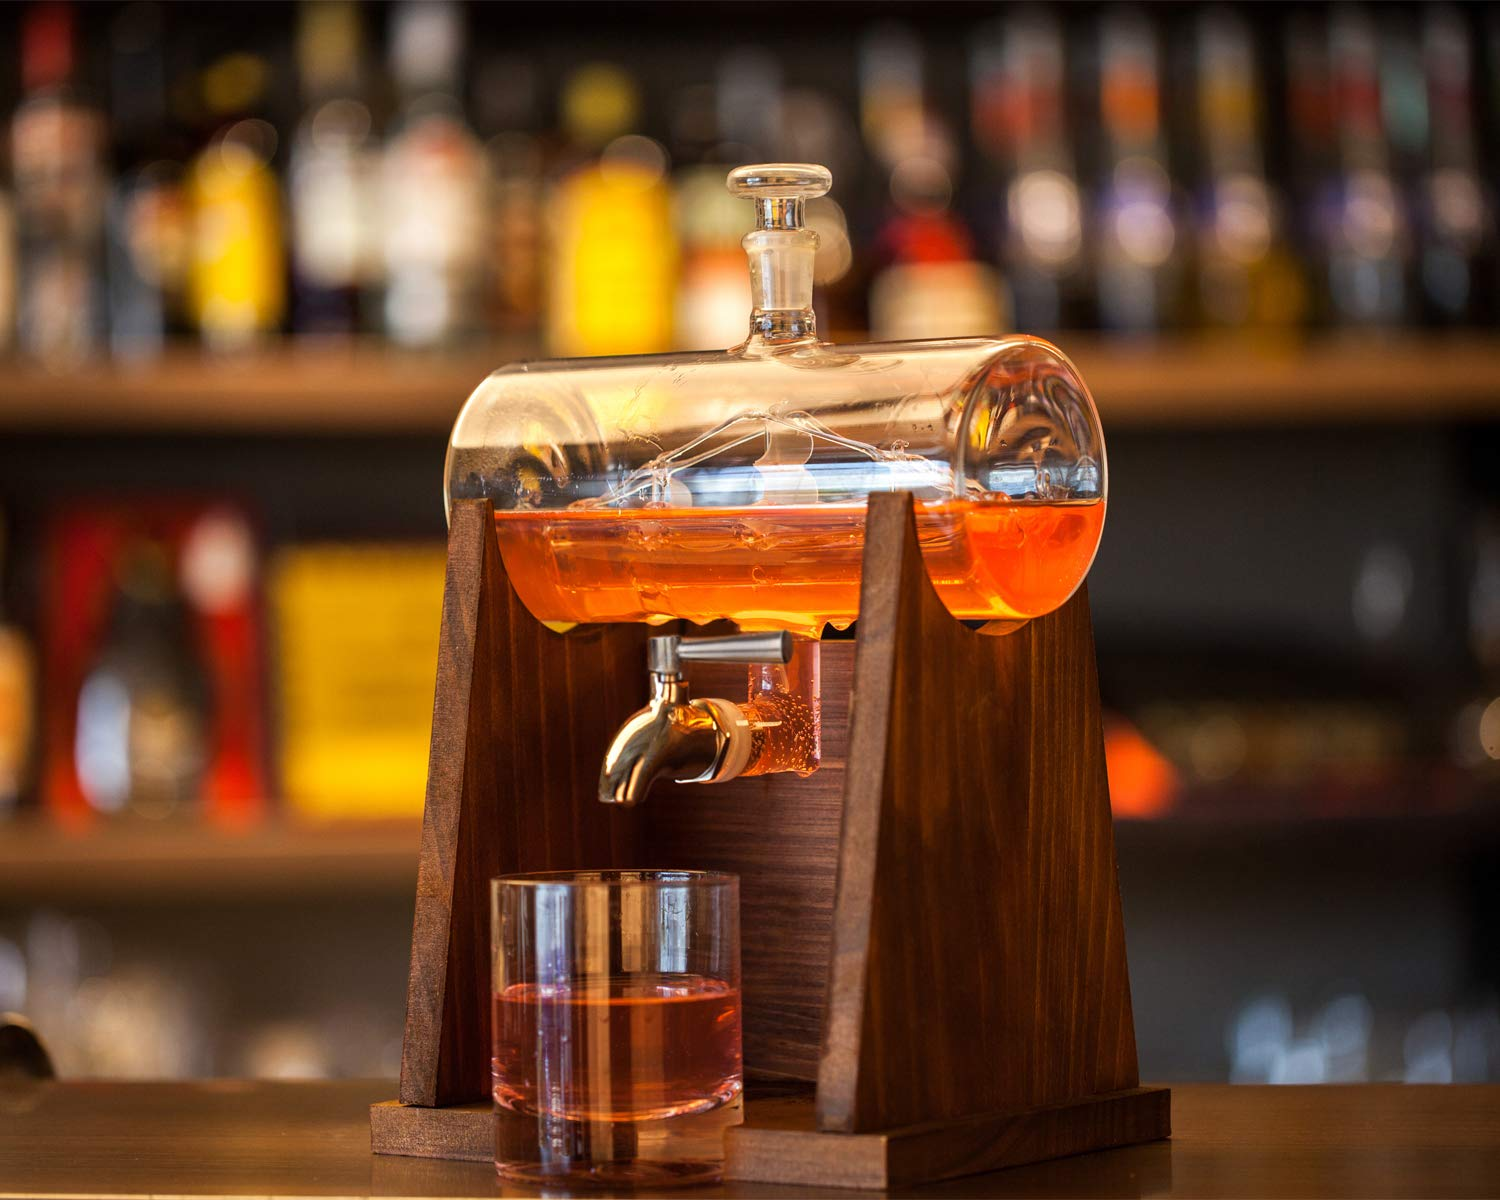 Jillmo Whiskey Decanter Set with 2 Glasses - 1250ml & 42 oz Lead Free Barrel Ship Dispenser with Detachable Wooden Holder Gift for Liquor, Scotch, Bourbon, Vodka, Whisky, Rum & Alcohol by Jillmo (Image #7)